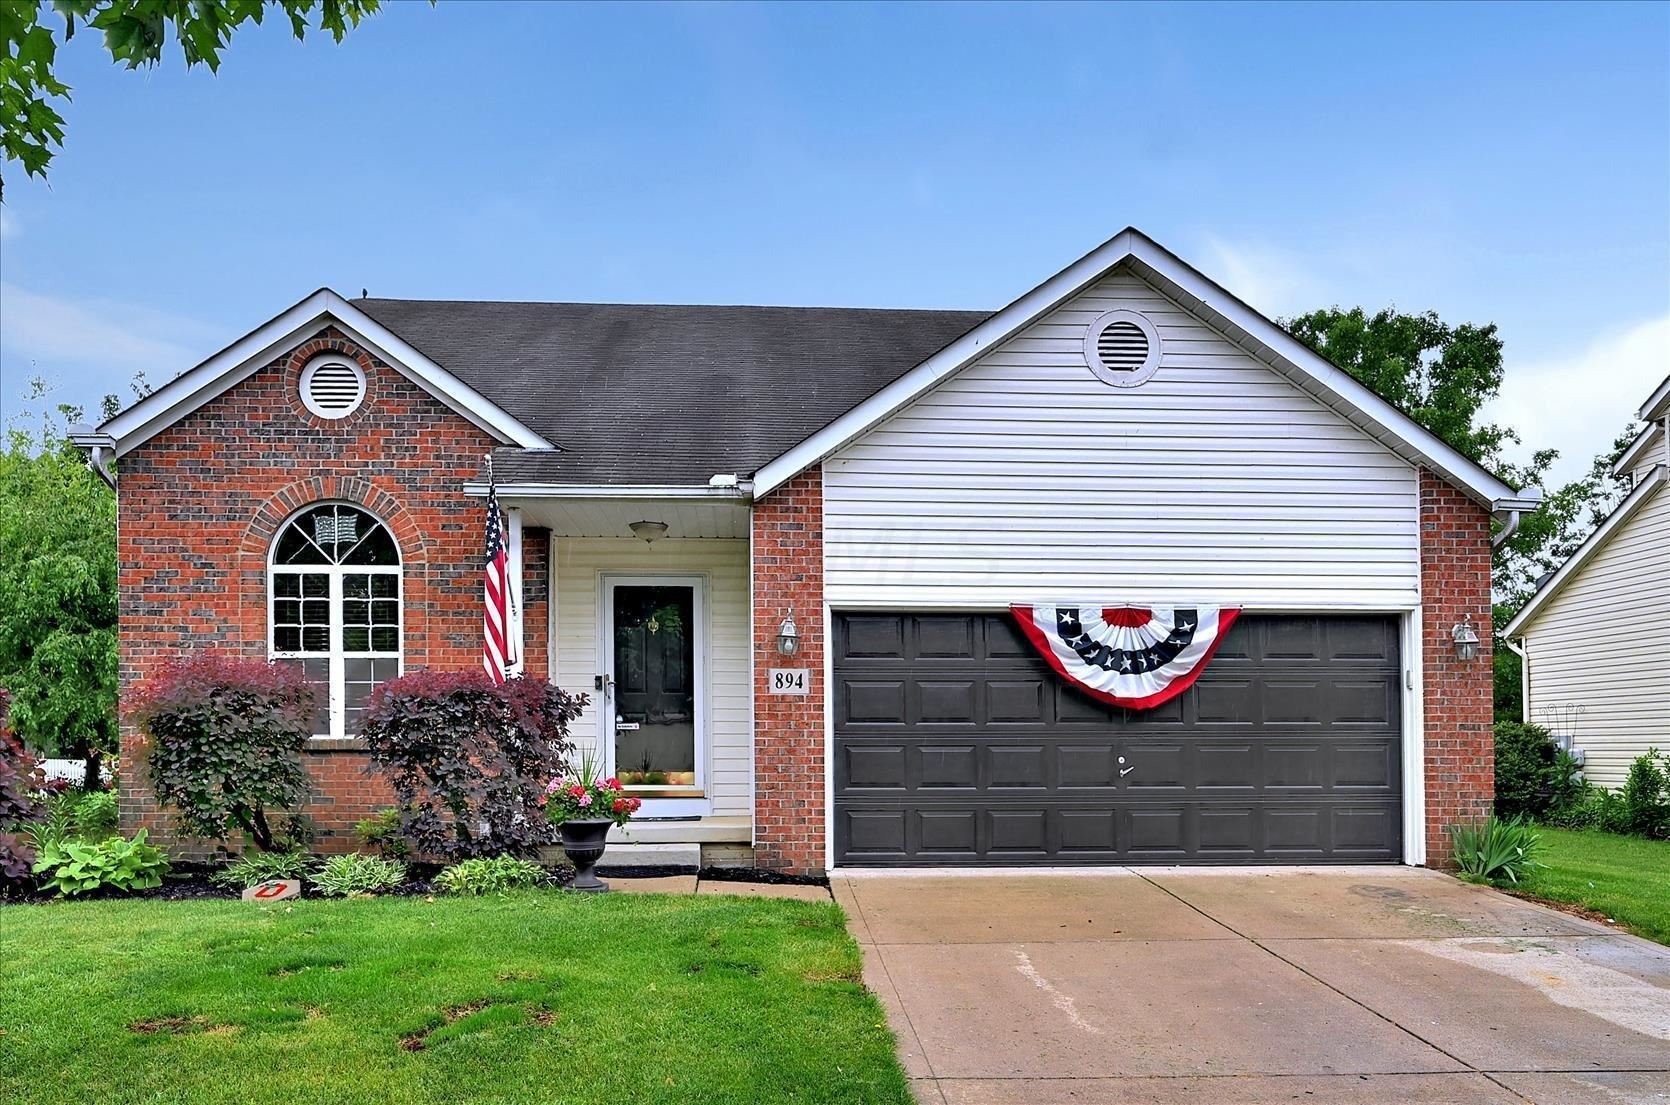 Photo of 894 Brittany Drive, Delaware, OH 43015 (MLS # 221017940)